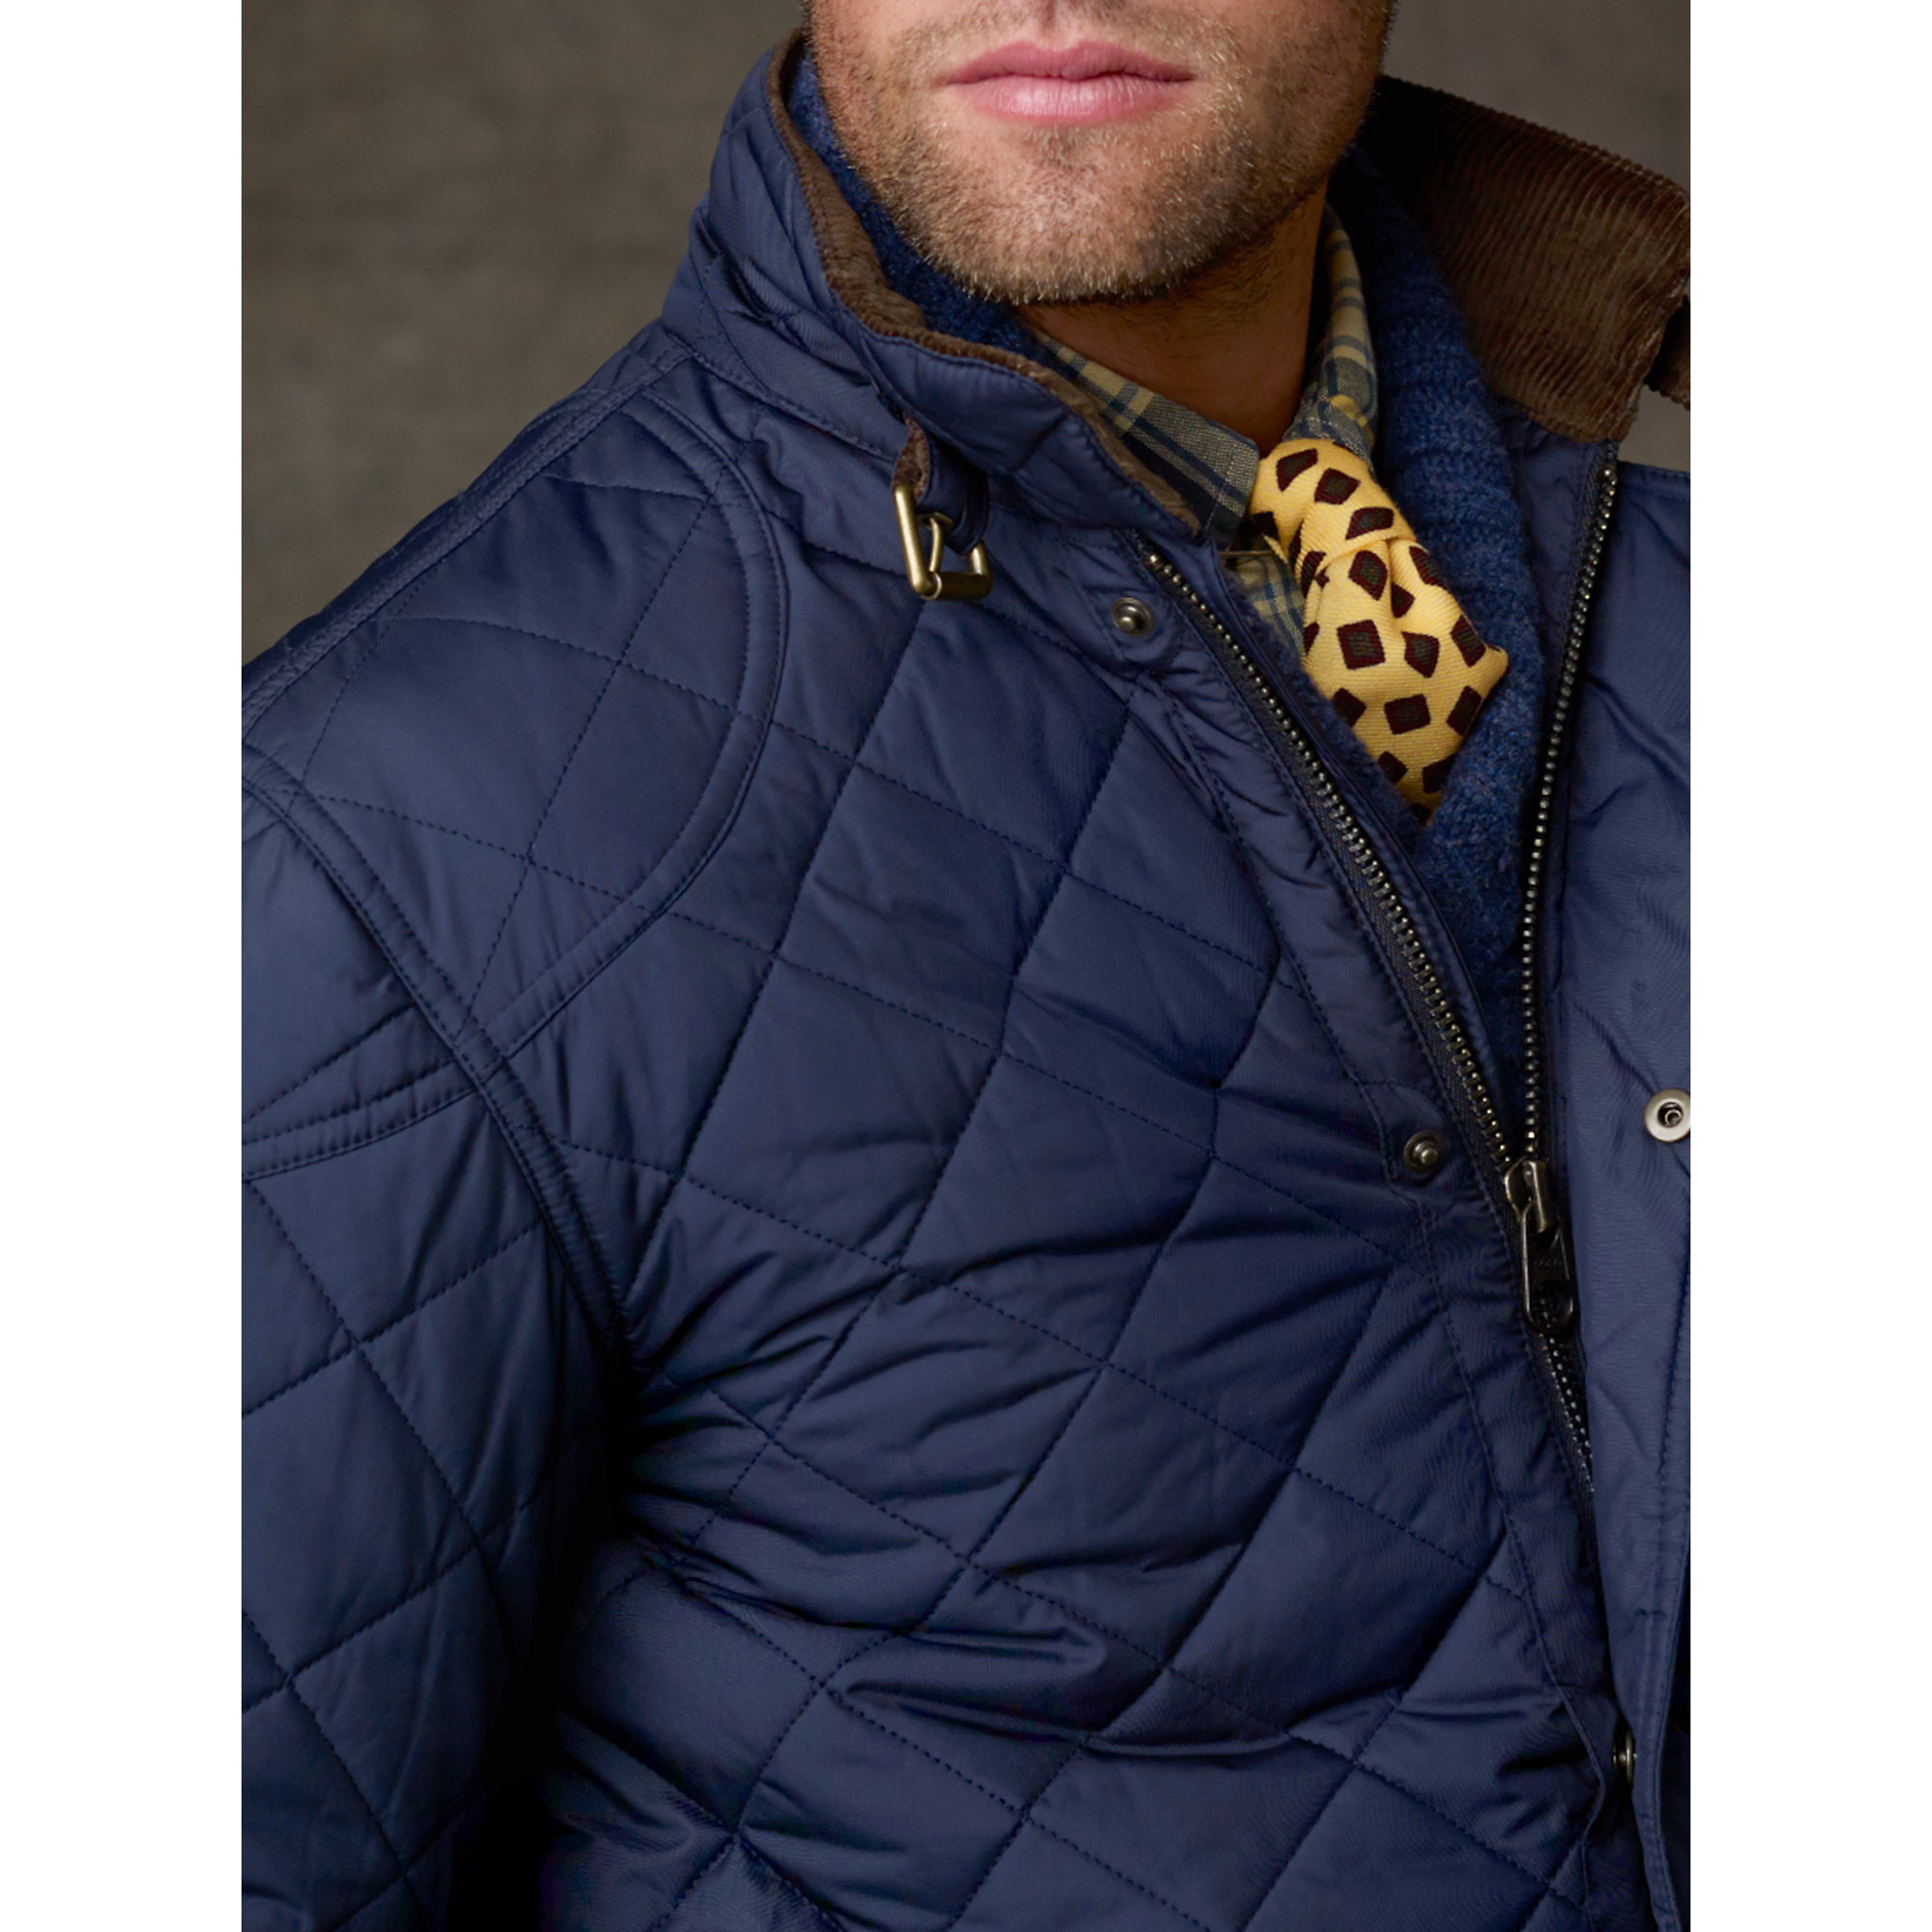 Bomber Men Ralph Lauren Jacket Kl3tf1jc HD92EI